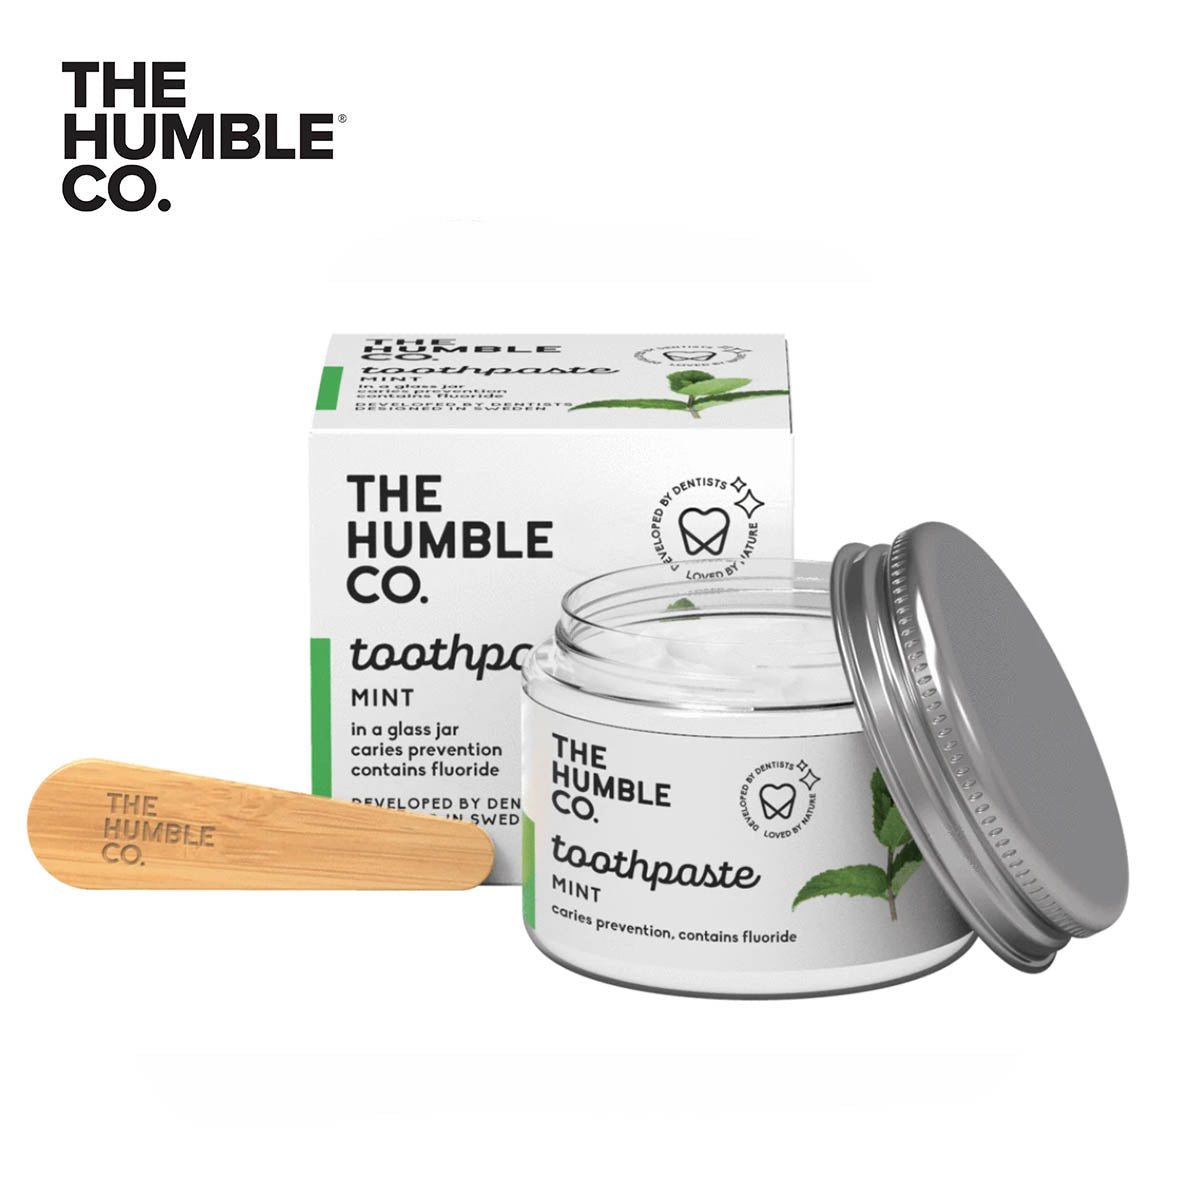 THE HUMBLE CO. Toothpaste in Glass Jar 50ml with Flouride